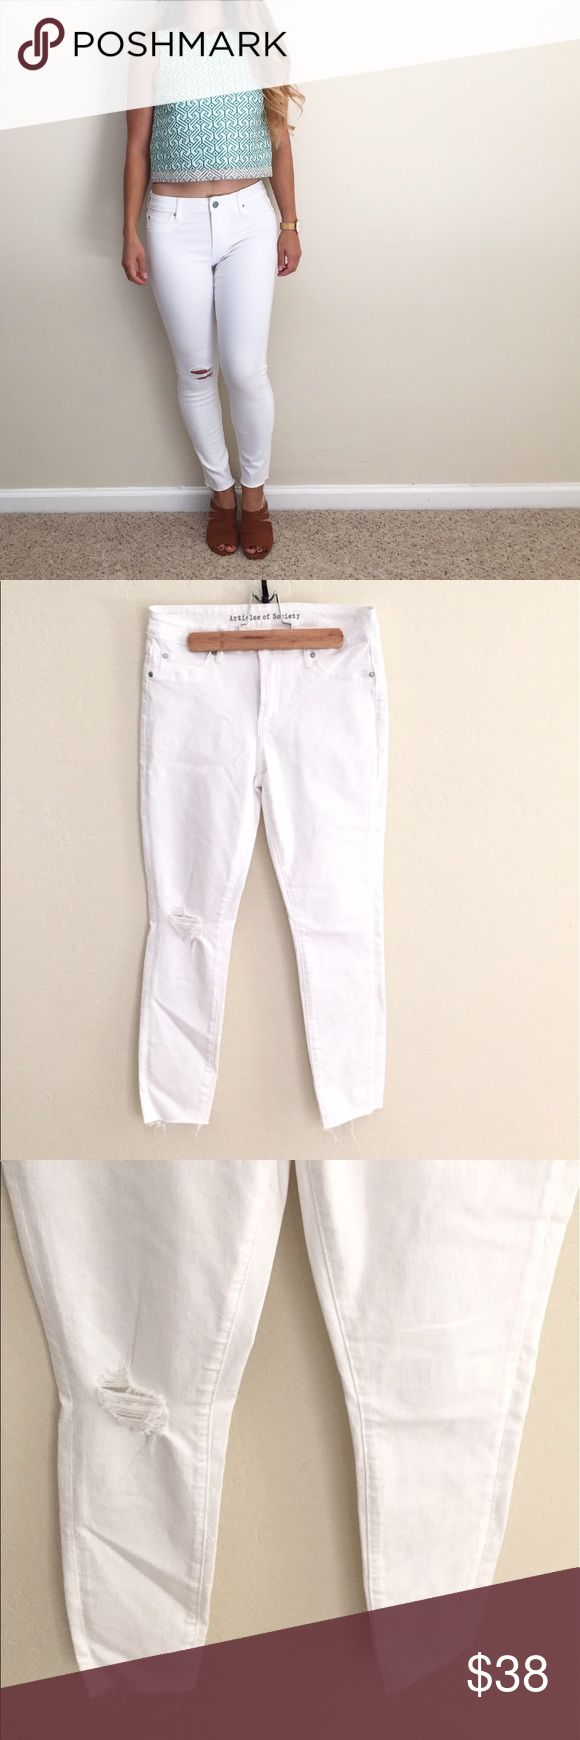 """Articles of Society 'Carly' Frayed Hem Skinny Jean Articles of Society 'Carly' Frayed Hem Skinny Jean! Women's size 27. In like-new condition. Worn white color. Frayed hem and light distress give these ankle-grazing jeans an easy-going feel. Faux front pockets. Back pockets. Approximate measurements given below:  Length: 35""""  Inseam: 26"""" Rise: 9"""" Waist: 14"""" Material: cotton/rayon/spandex Size: 27  🔸10% off bundles of 2 or more items 🔸No Trades 🔸Reasonable offers accepted 🔸Fast Shipping…"""